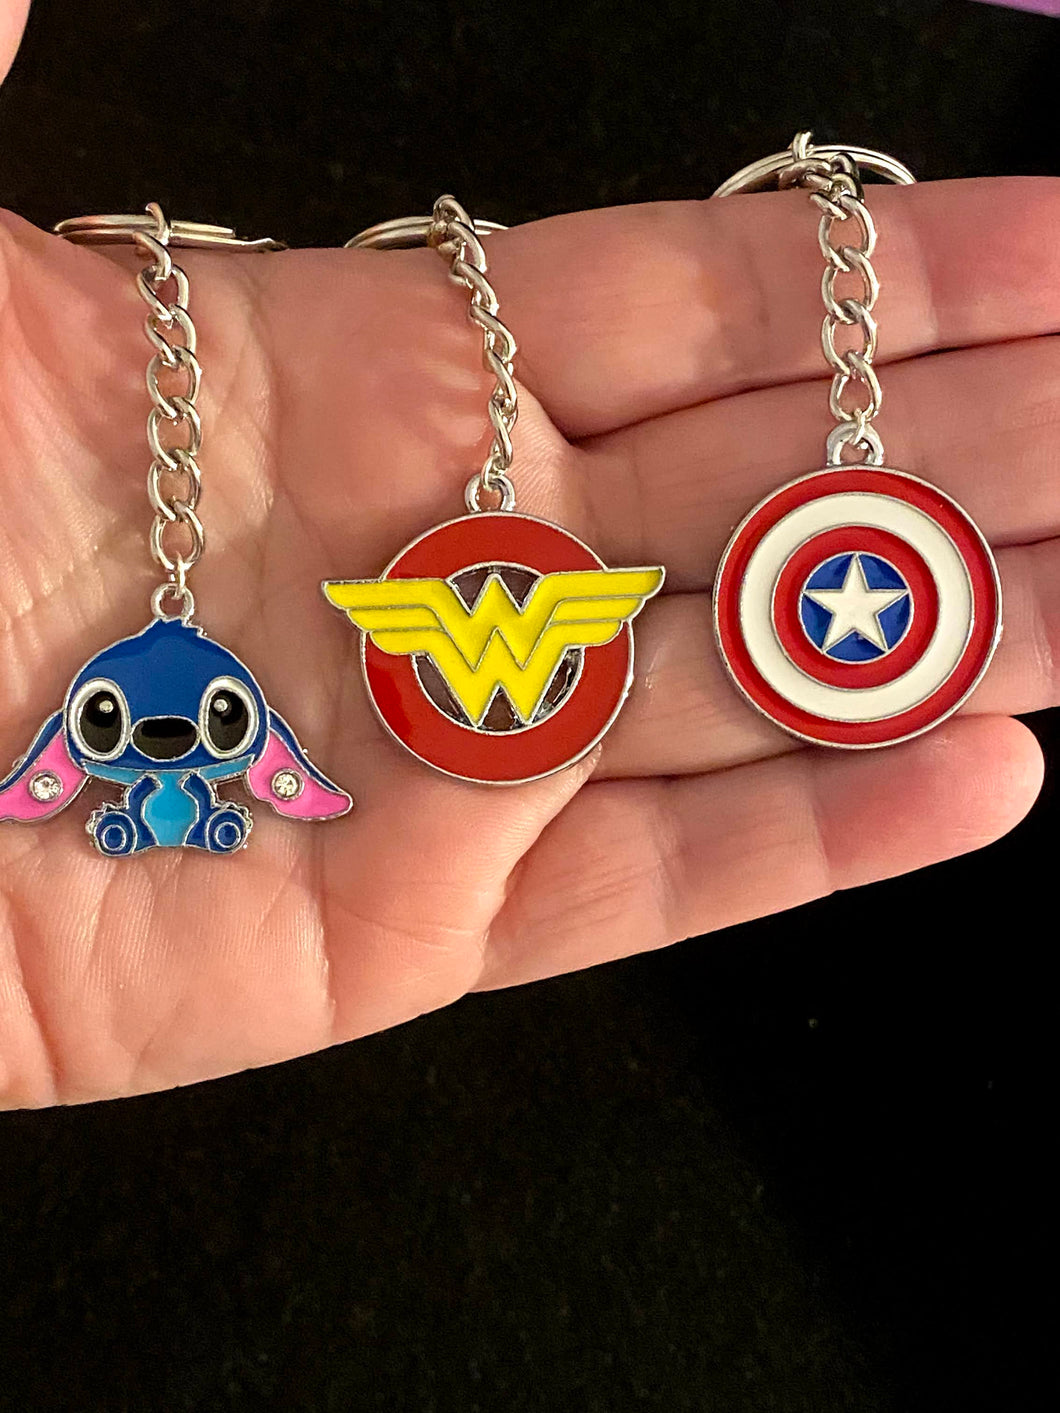 Wonder Woman, Captain America, Stitch Enamel Charm Keychains